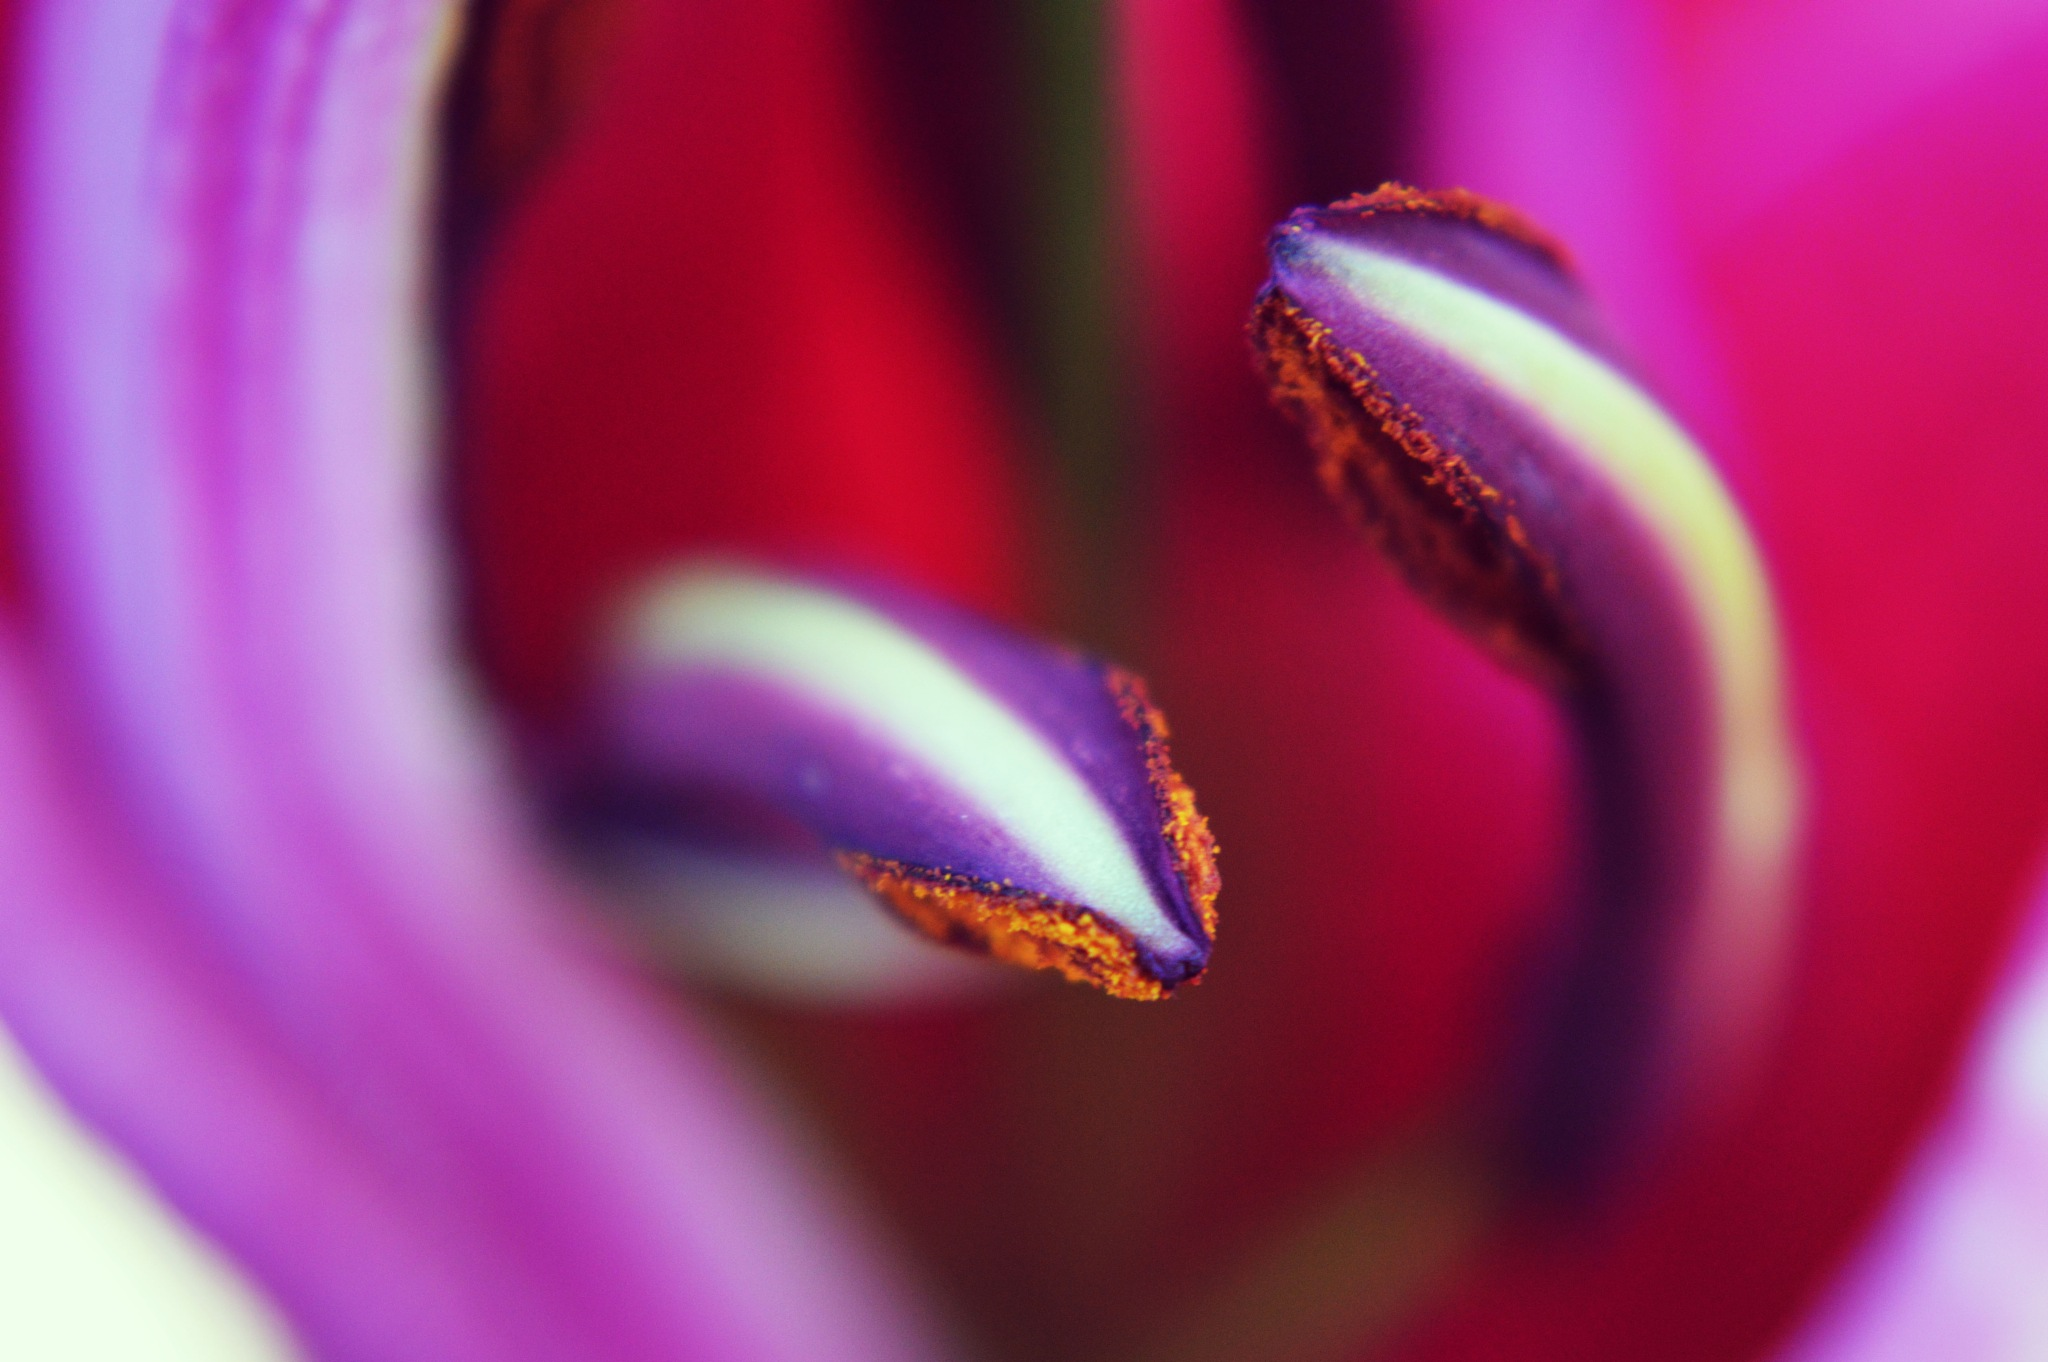 Two Serpents in a Lily by Mark Pemberton